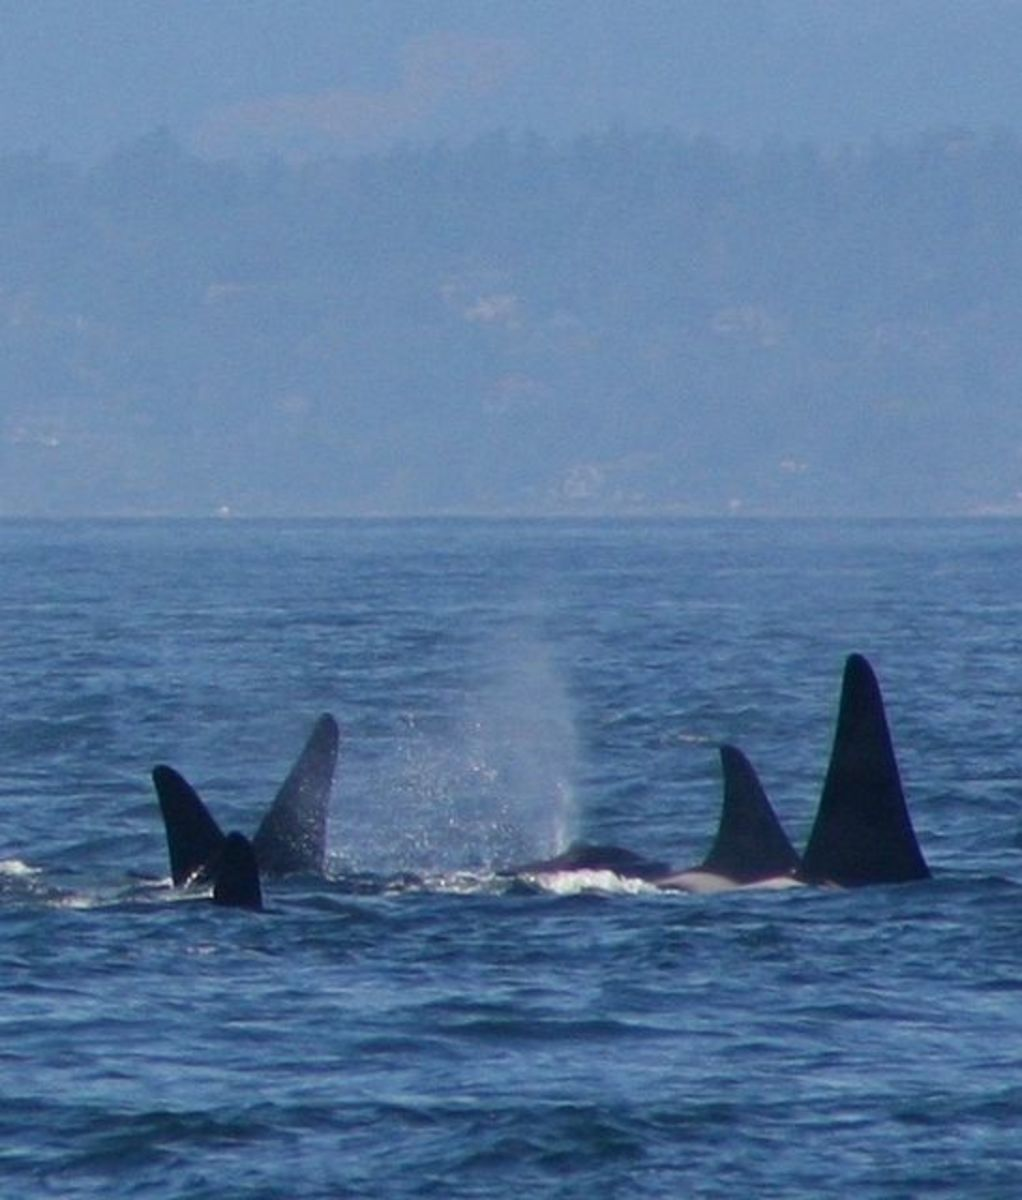 A superpod gathering of Orcas: two transient pods and a resident pod